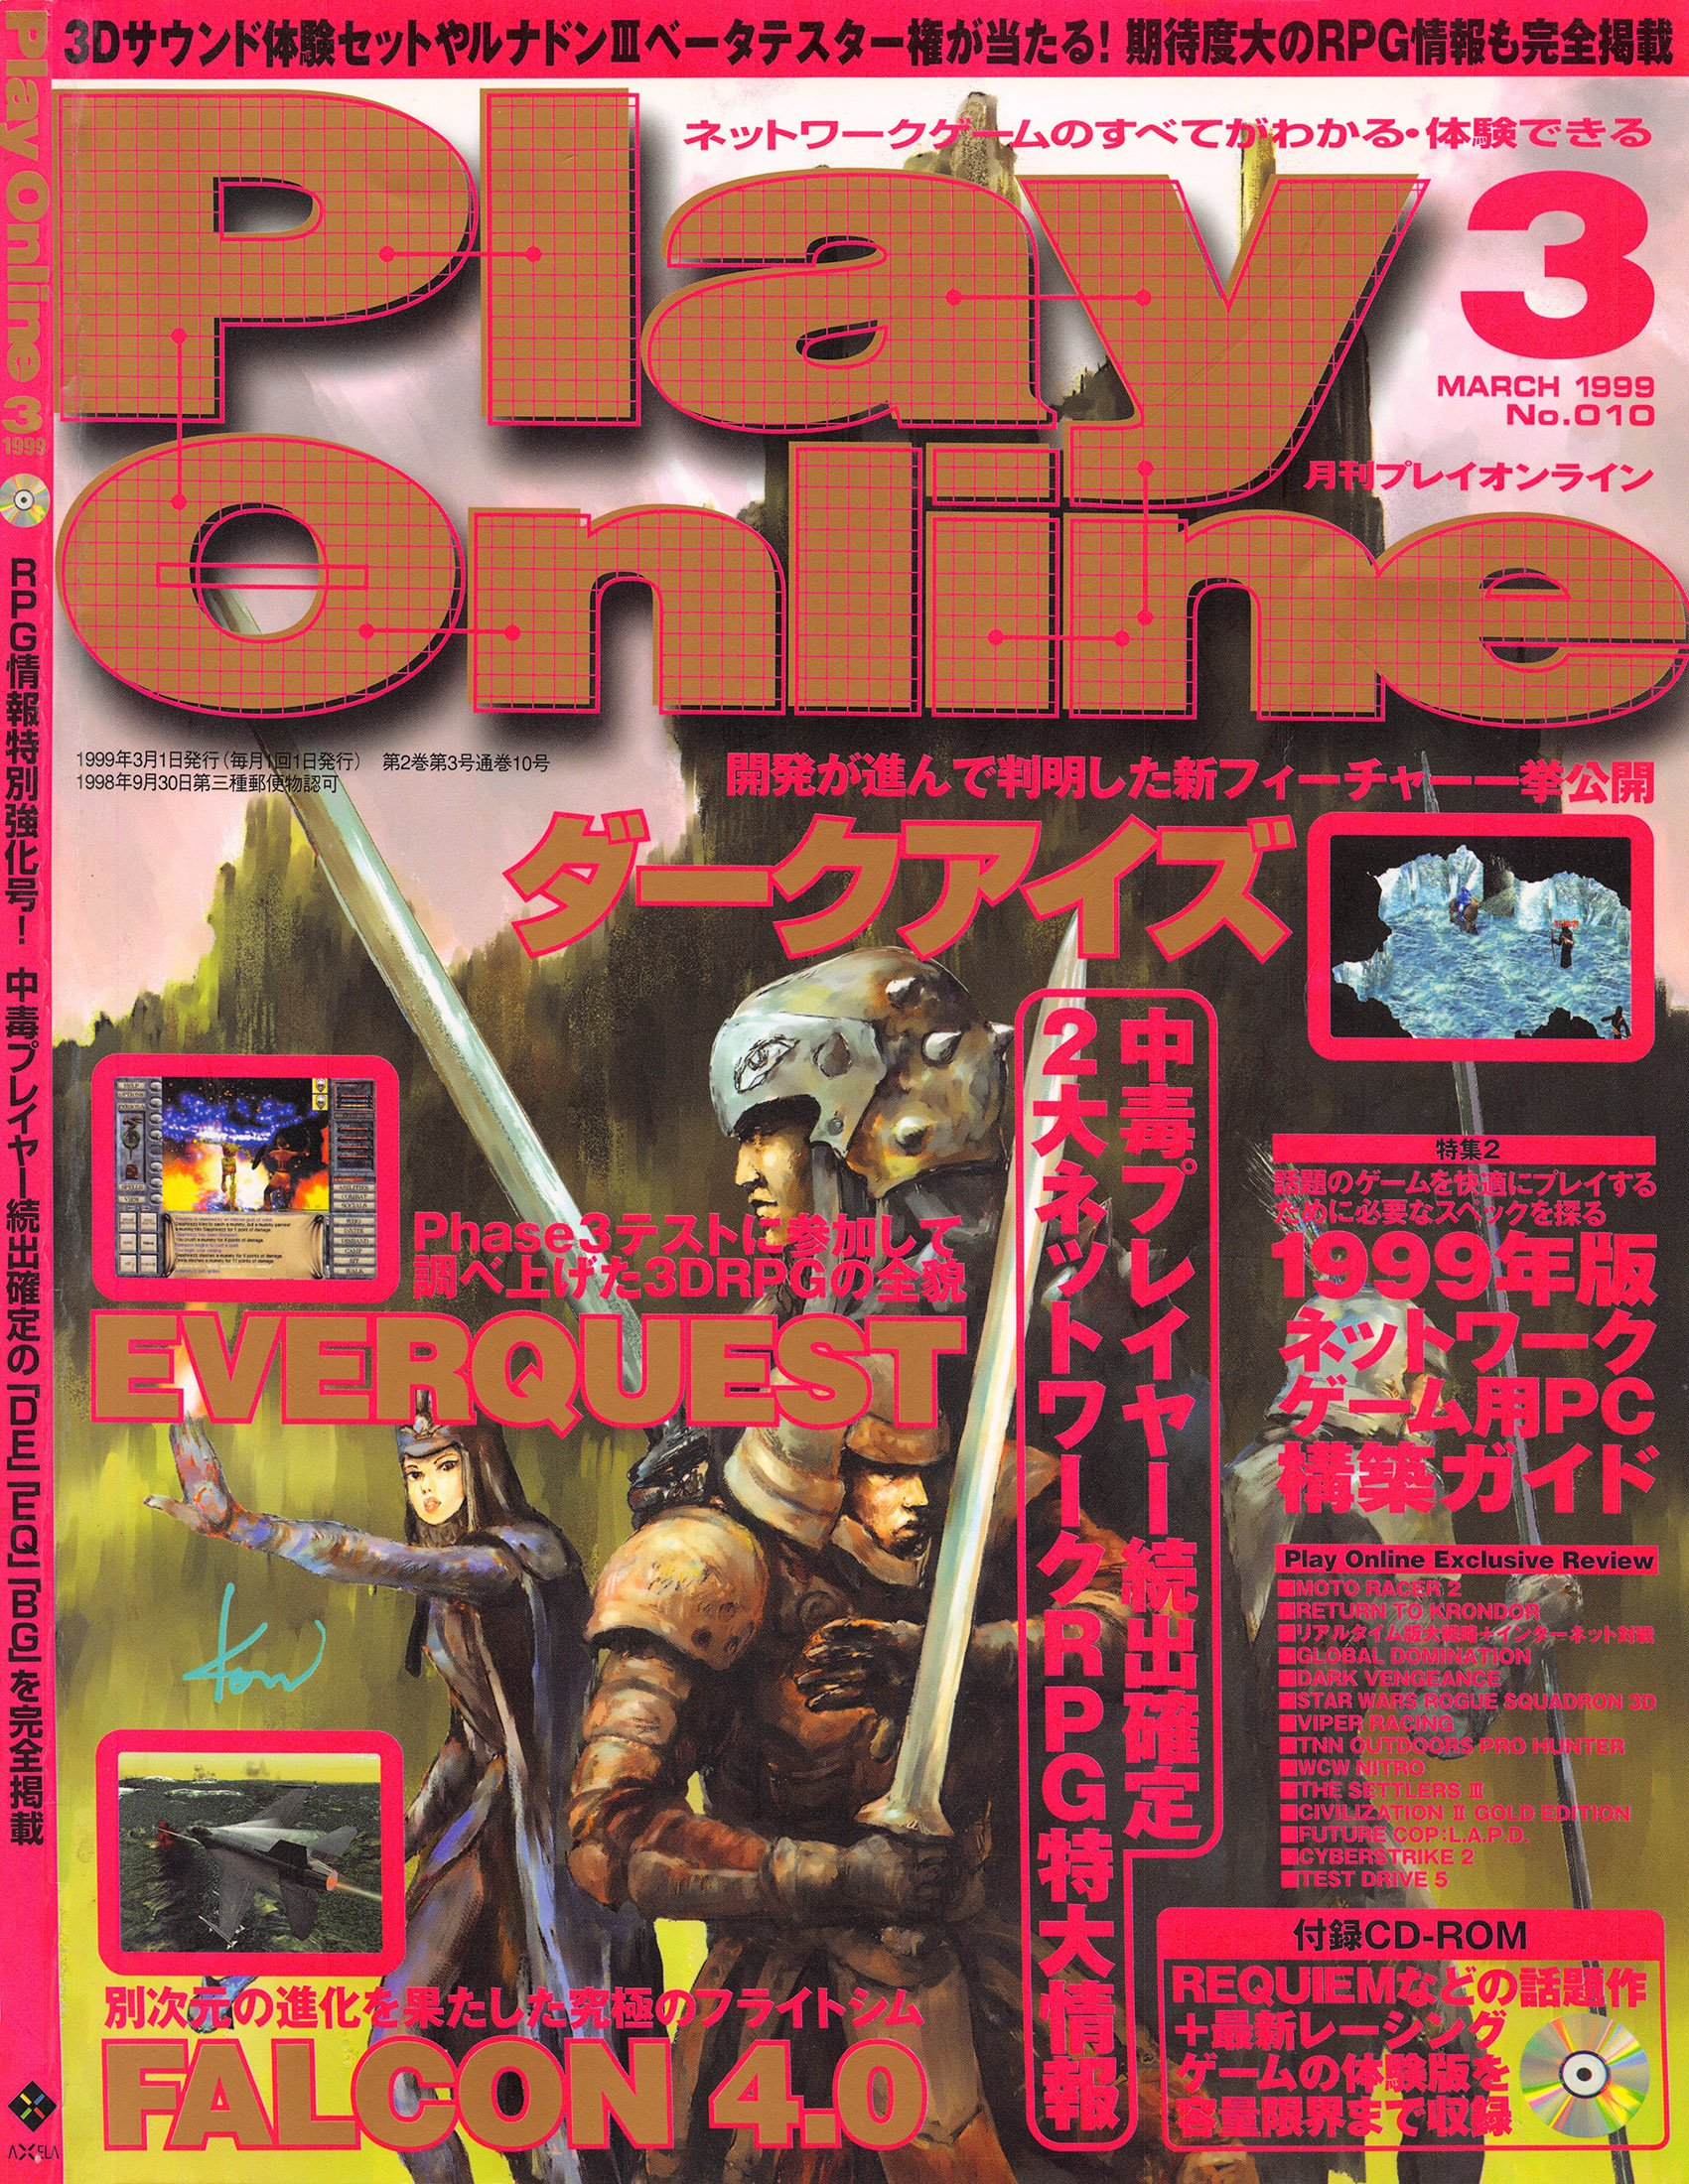 Play Online No.010 (March 1999)